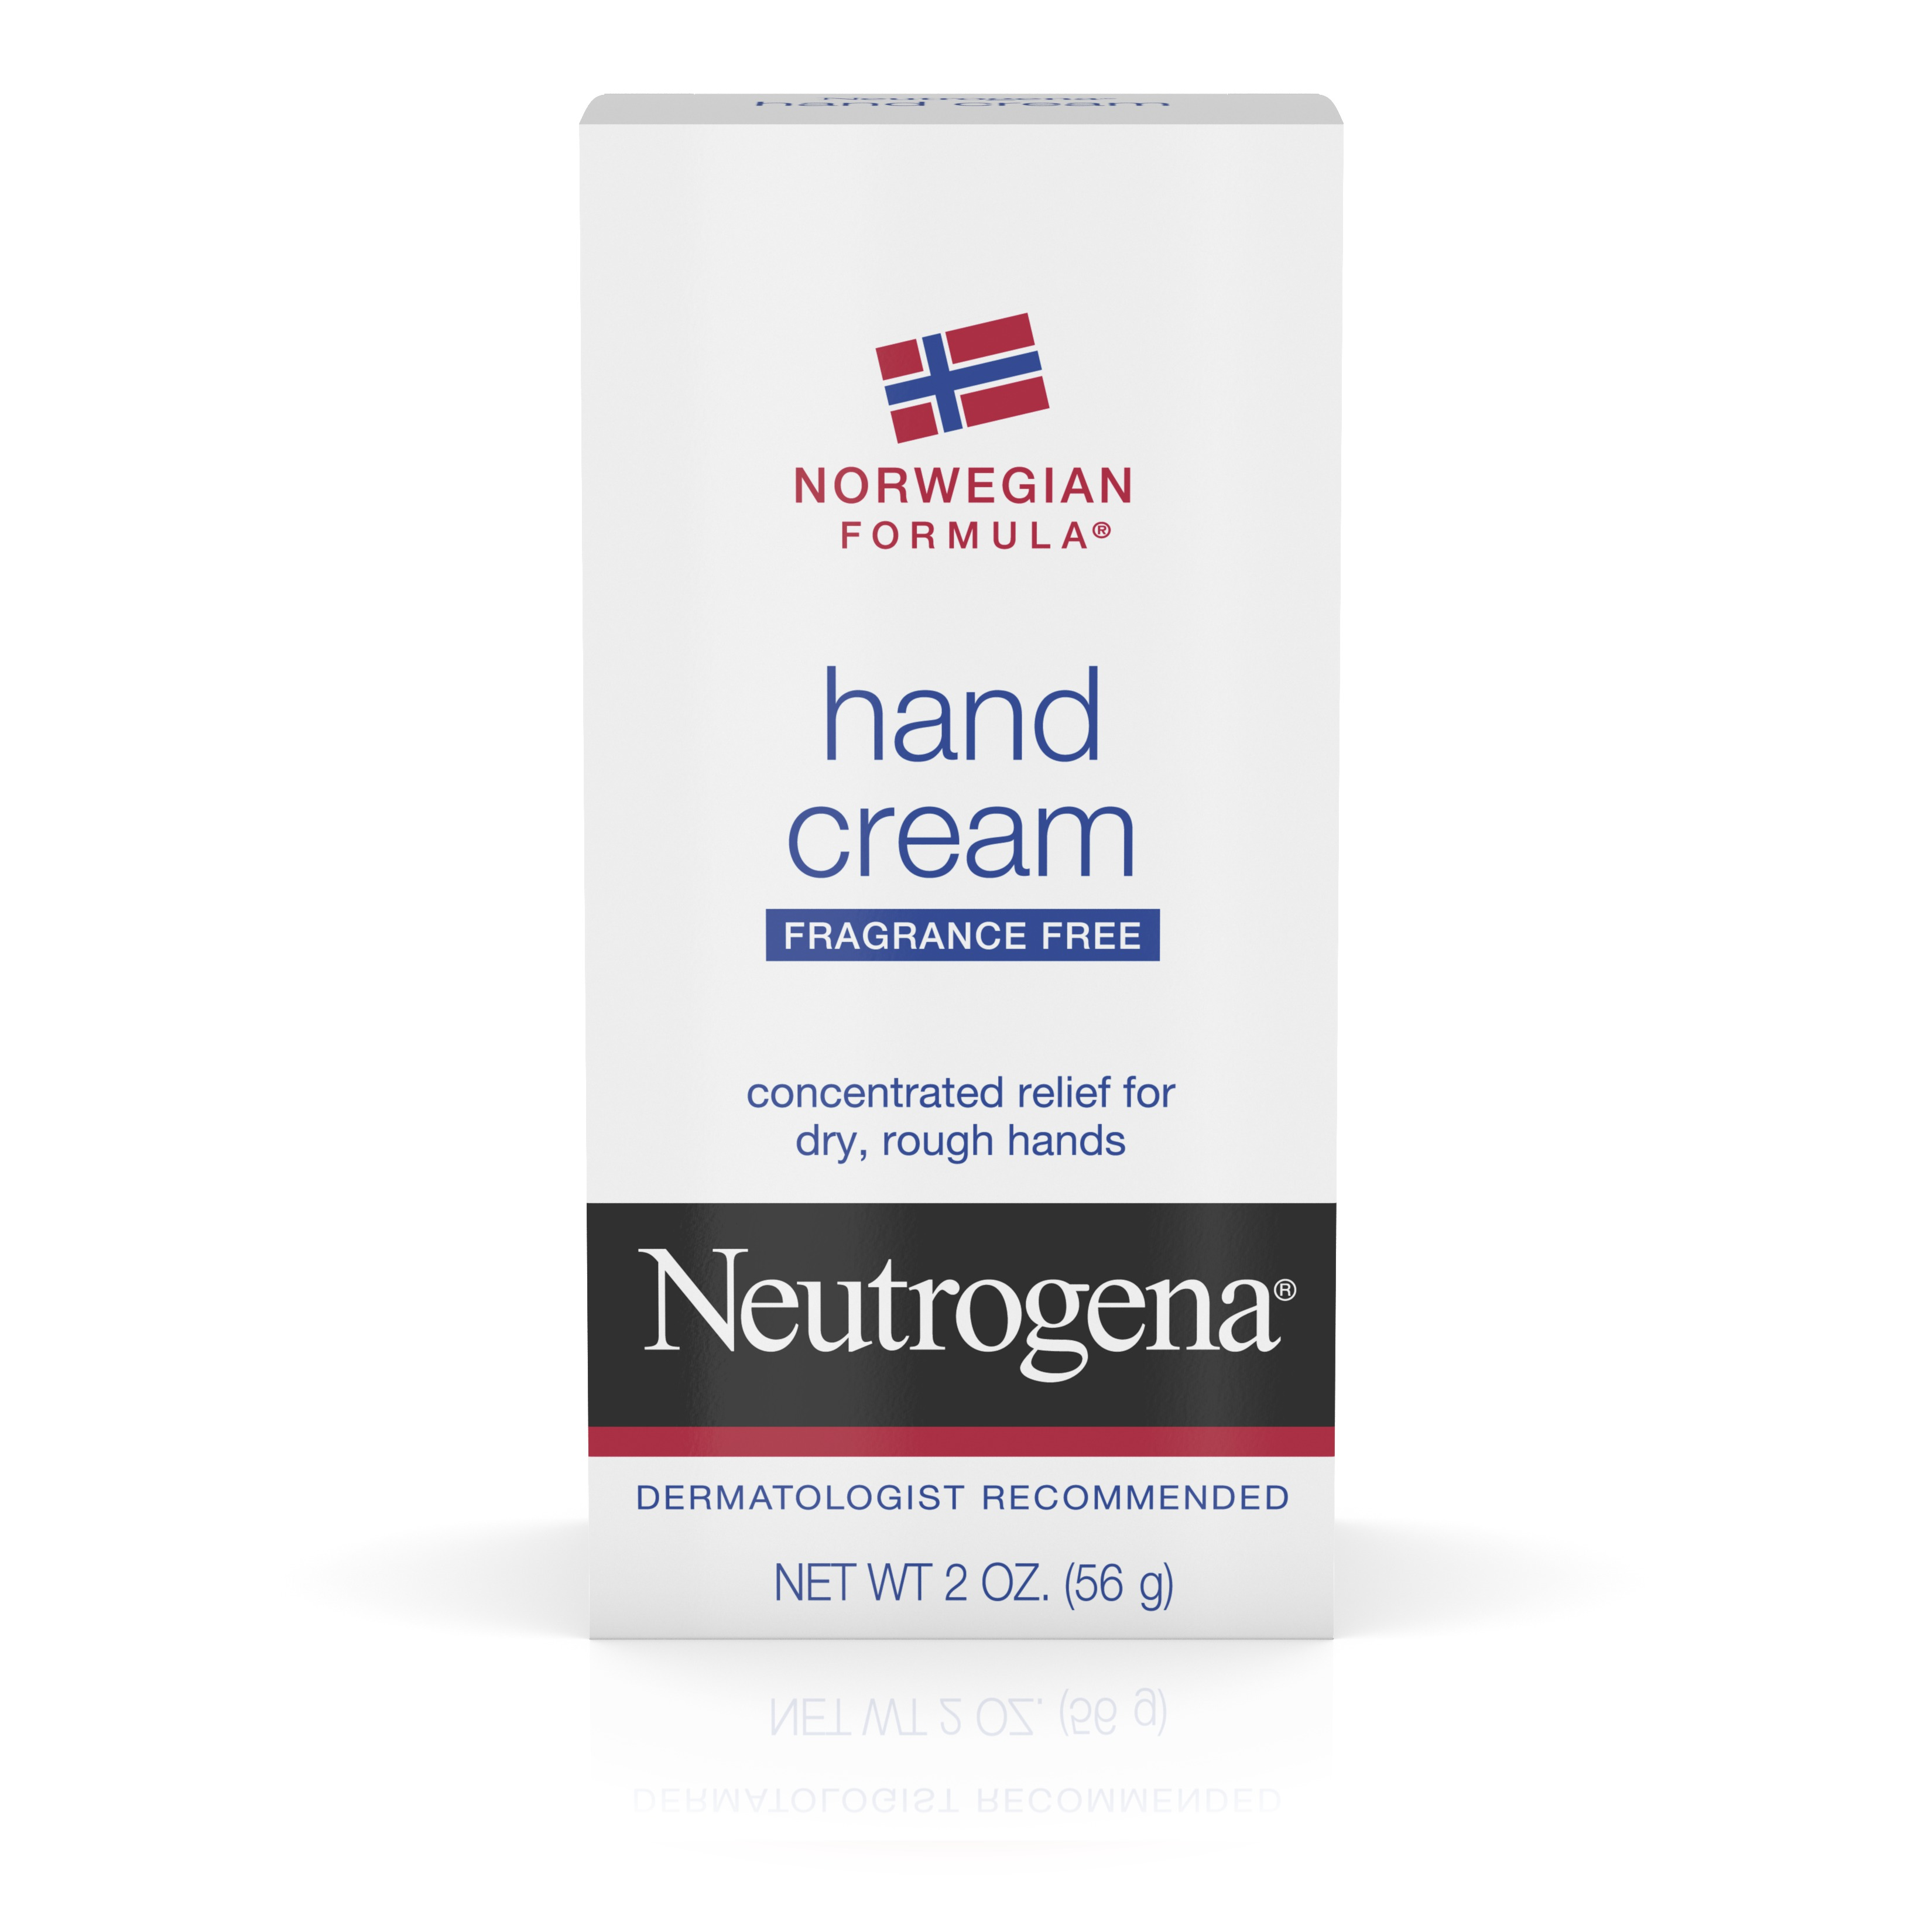 Neutrogena Norwegian Formula Hand Cream Fragrance Free, 2 Oz - Walmart.com